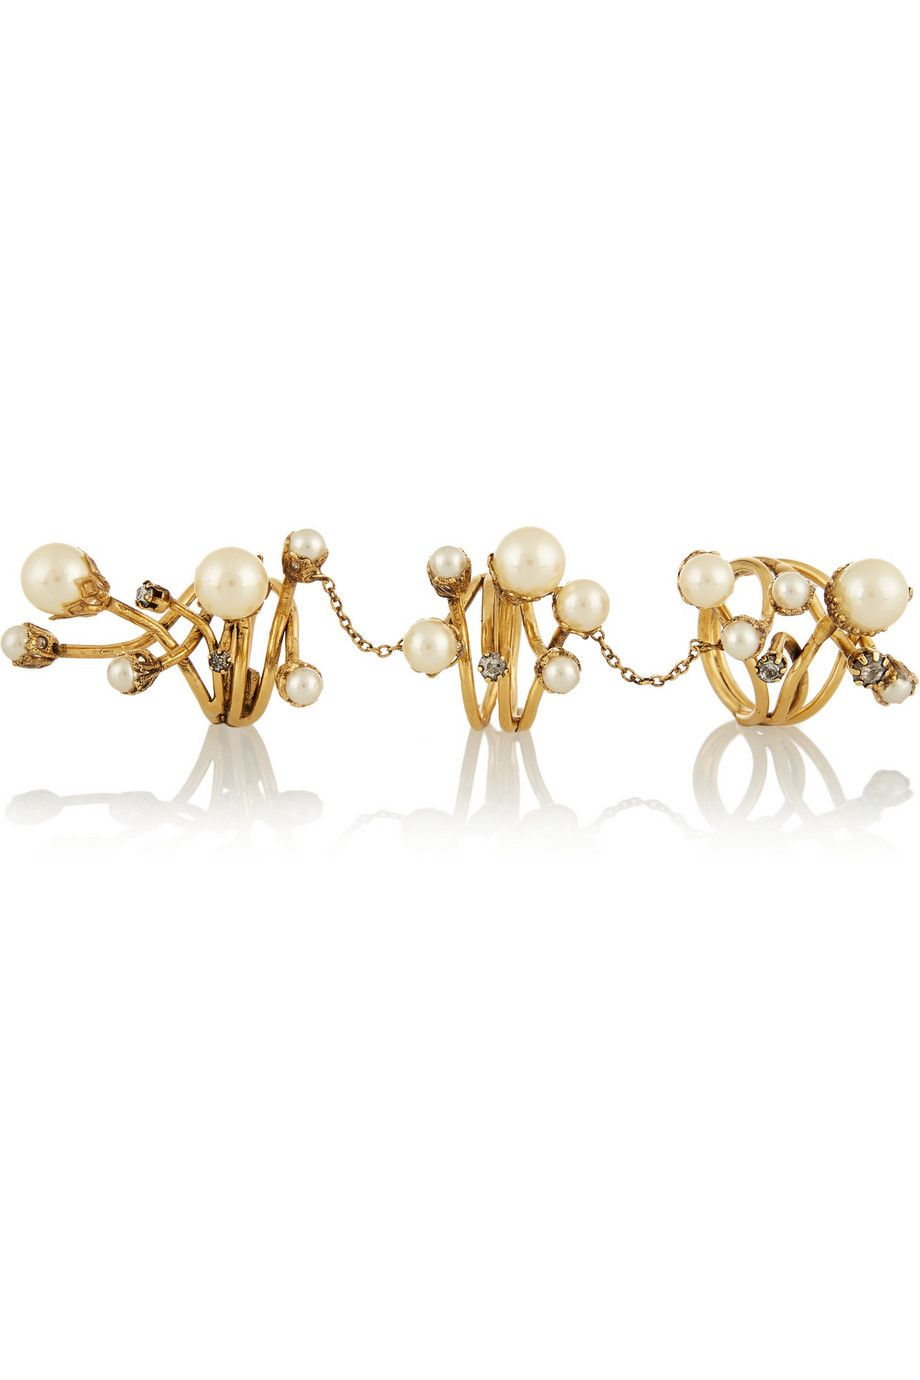 Erickson Beamon|Stratosphere gold-plated, faux pearl and Swarovski crystal ring|NET-A-PORTER.COM